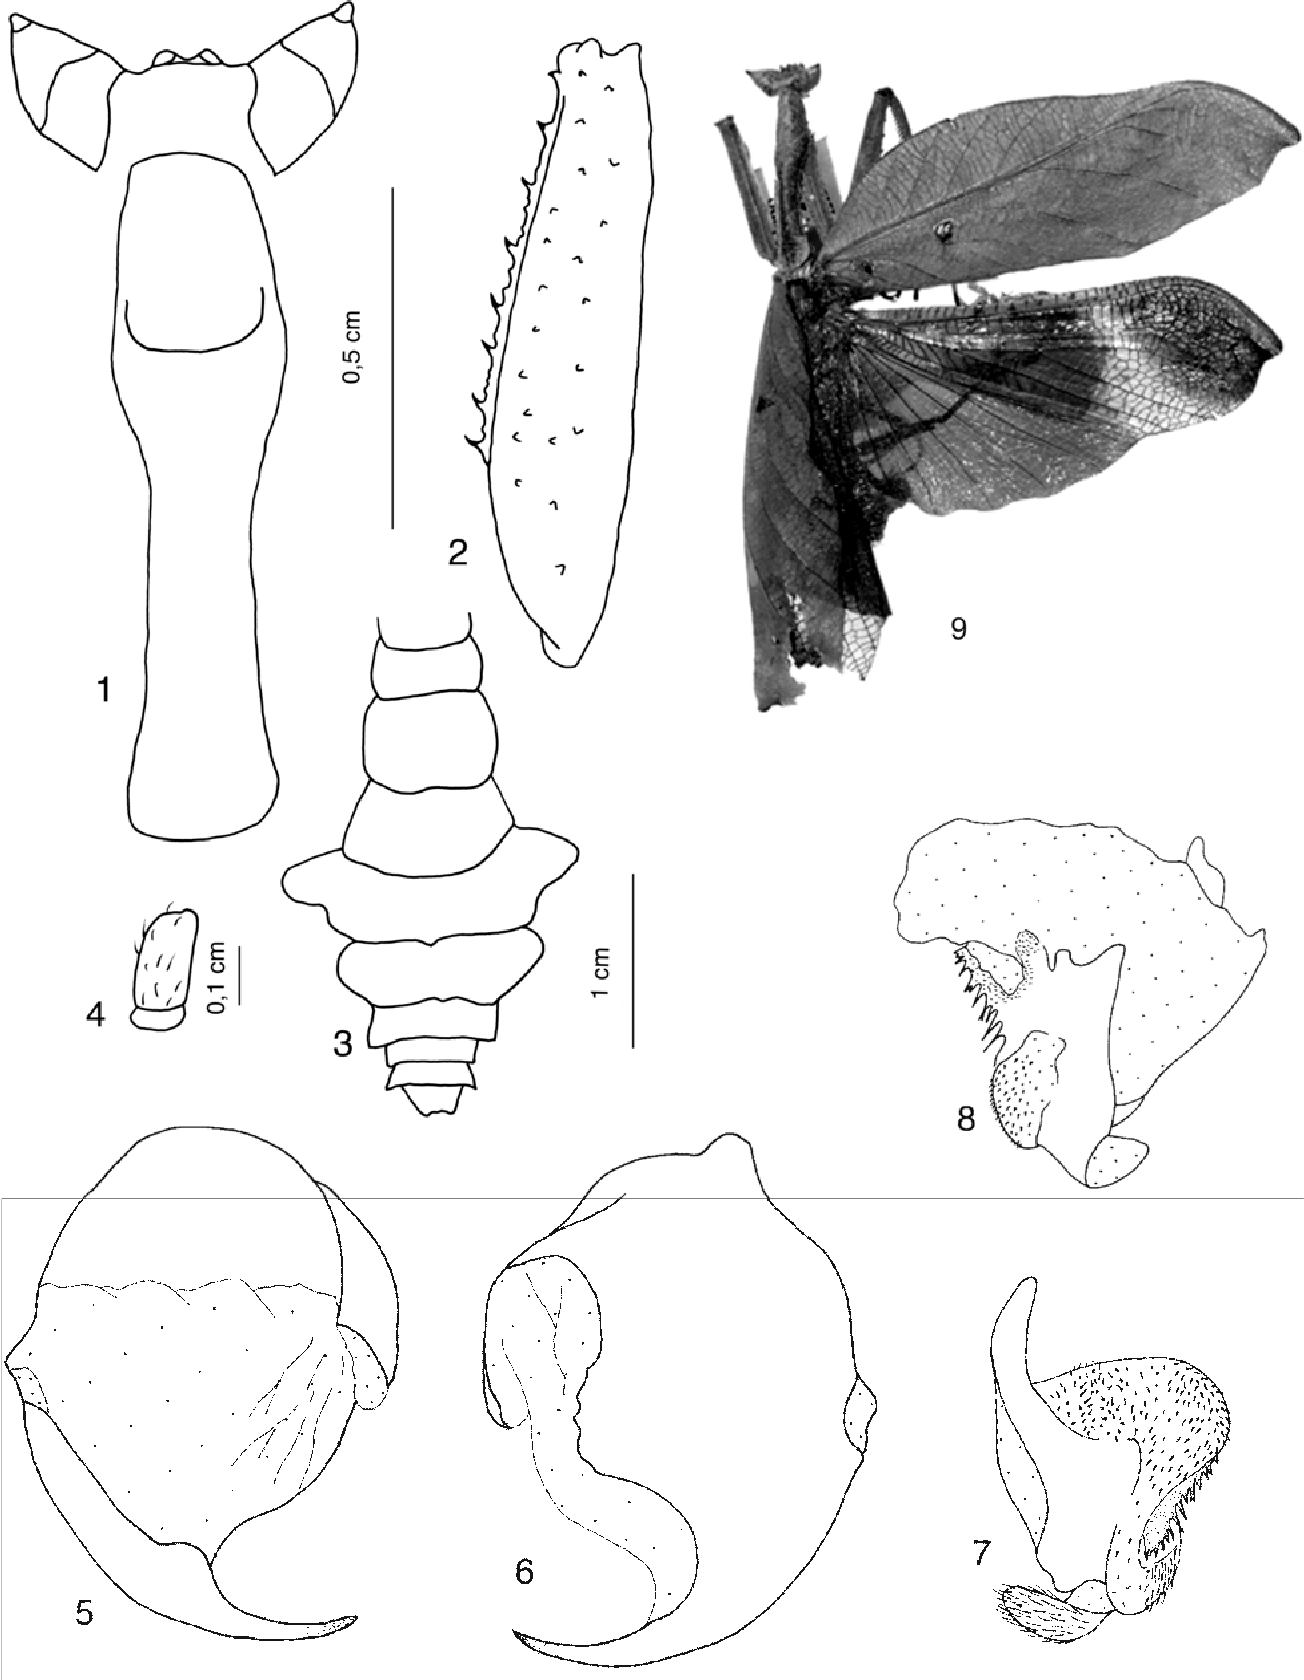 Figs 1-9. Acanthops septemfasciata n.sp.: 1. head and pronotum; 2. anterior femur; 3. abdomen; 4. last segment of cercus. 5-8. External male genitalia: 5-6 ventral phallomere in dorsal and ventral view; 7-8 left phallomere in dorsal and ventral view. 9. Habitus.